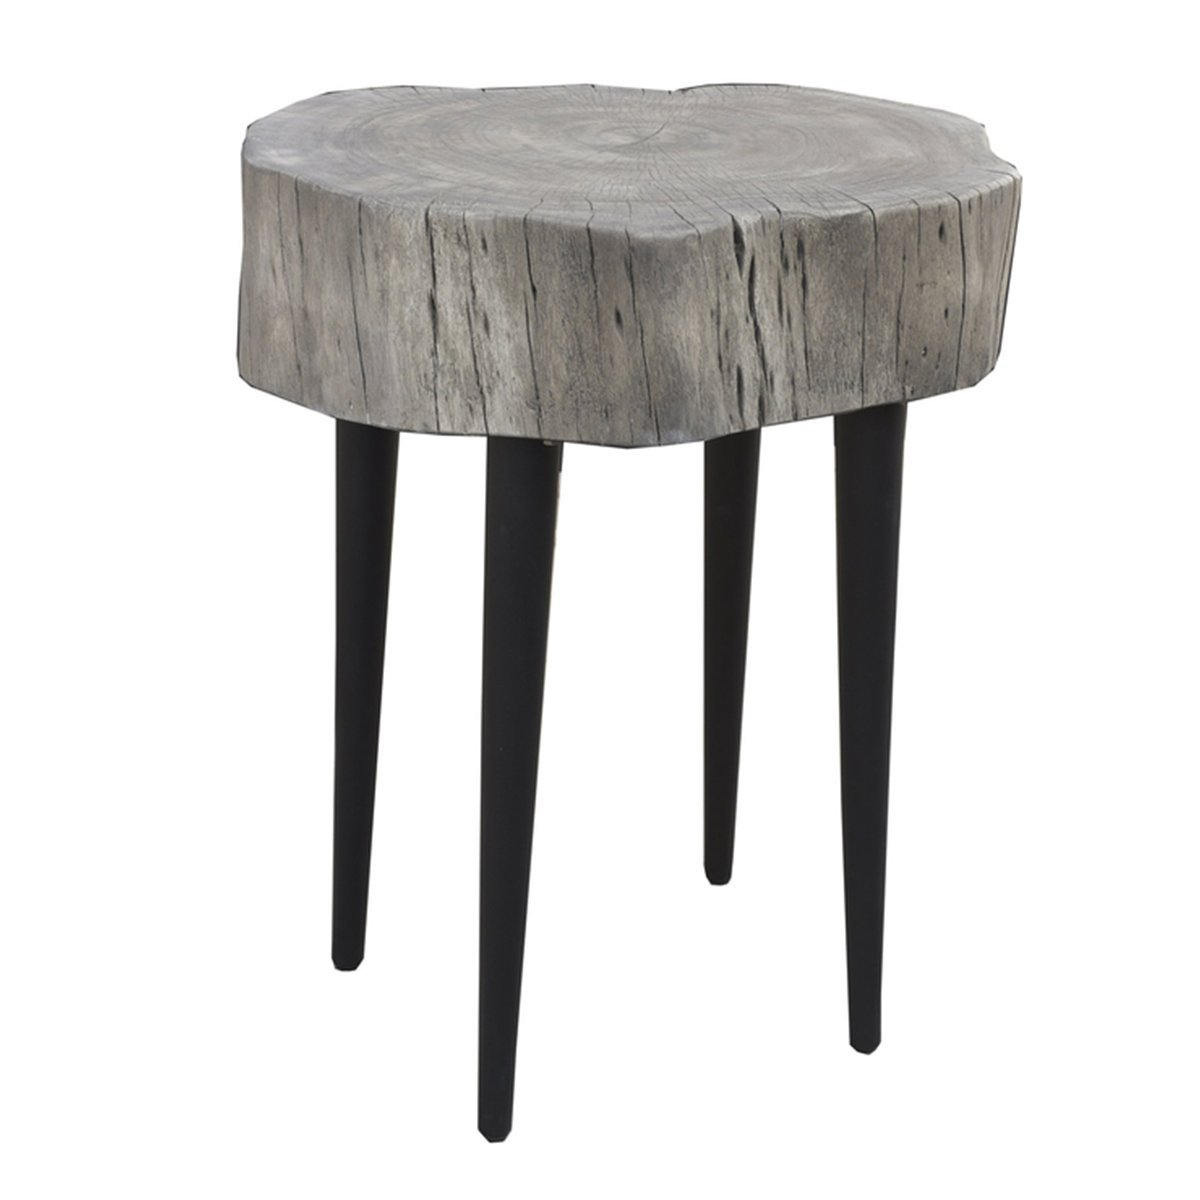 SOLID ACACIA ORGANIC TRUNK BISTRO TABLE - Showhome Furniture